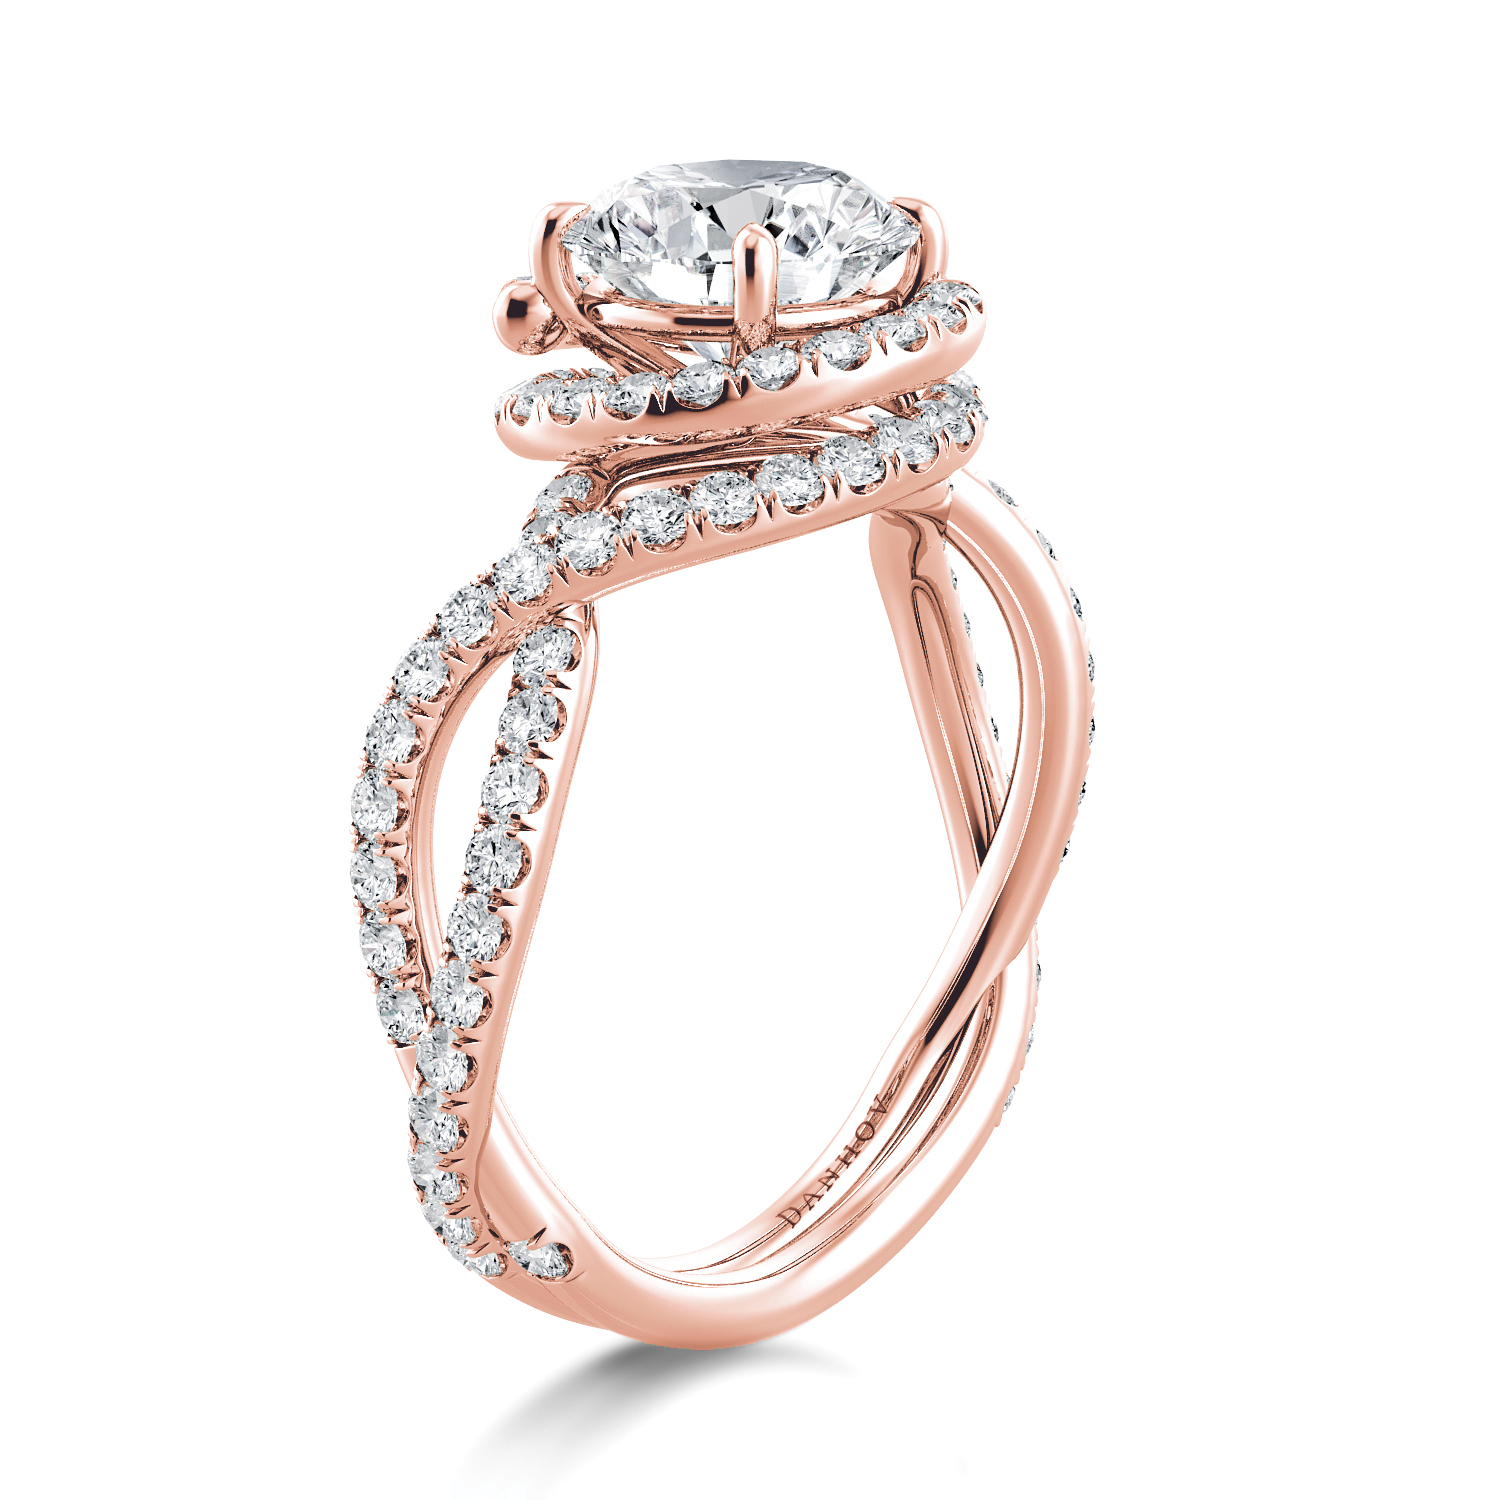 Danhov Diary | Sharing Thoughts, Information, News And Intended For Recent Princess Cut Single Diamond Wedding Bands In Rose Gold (View 12 of 25)